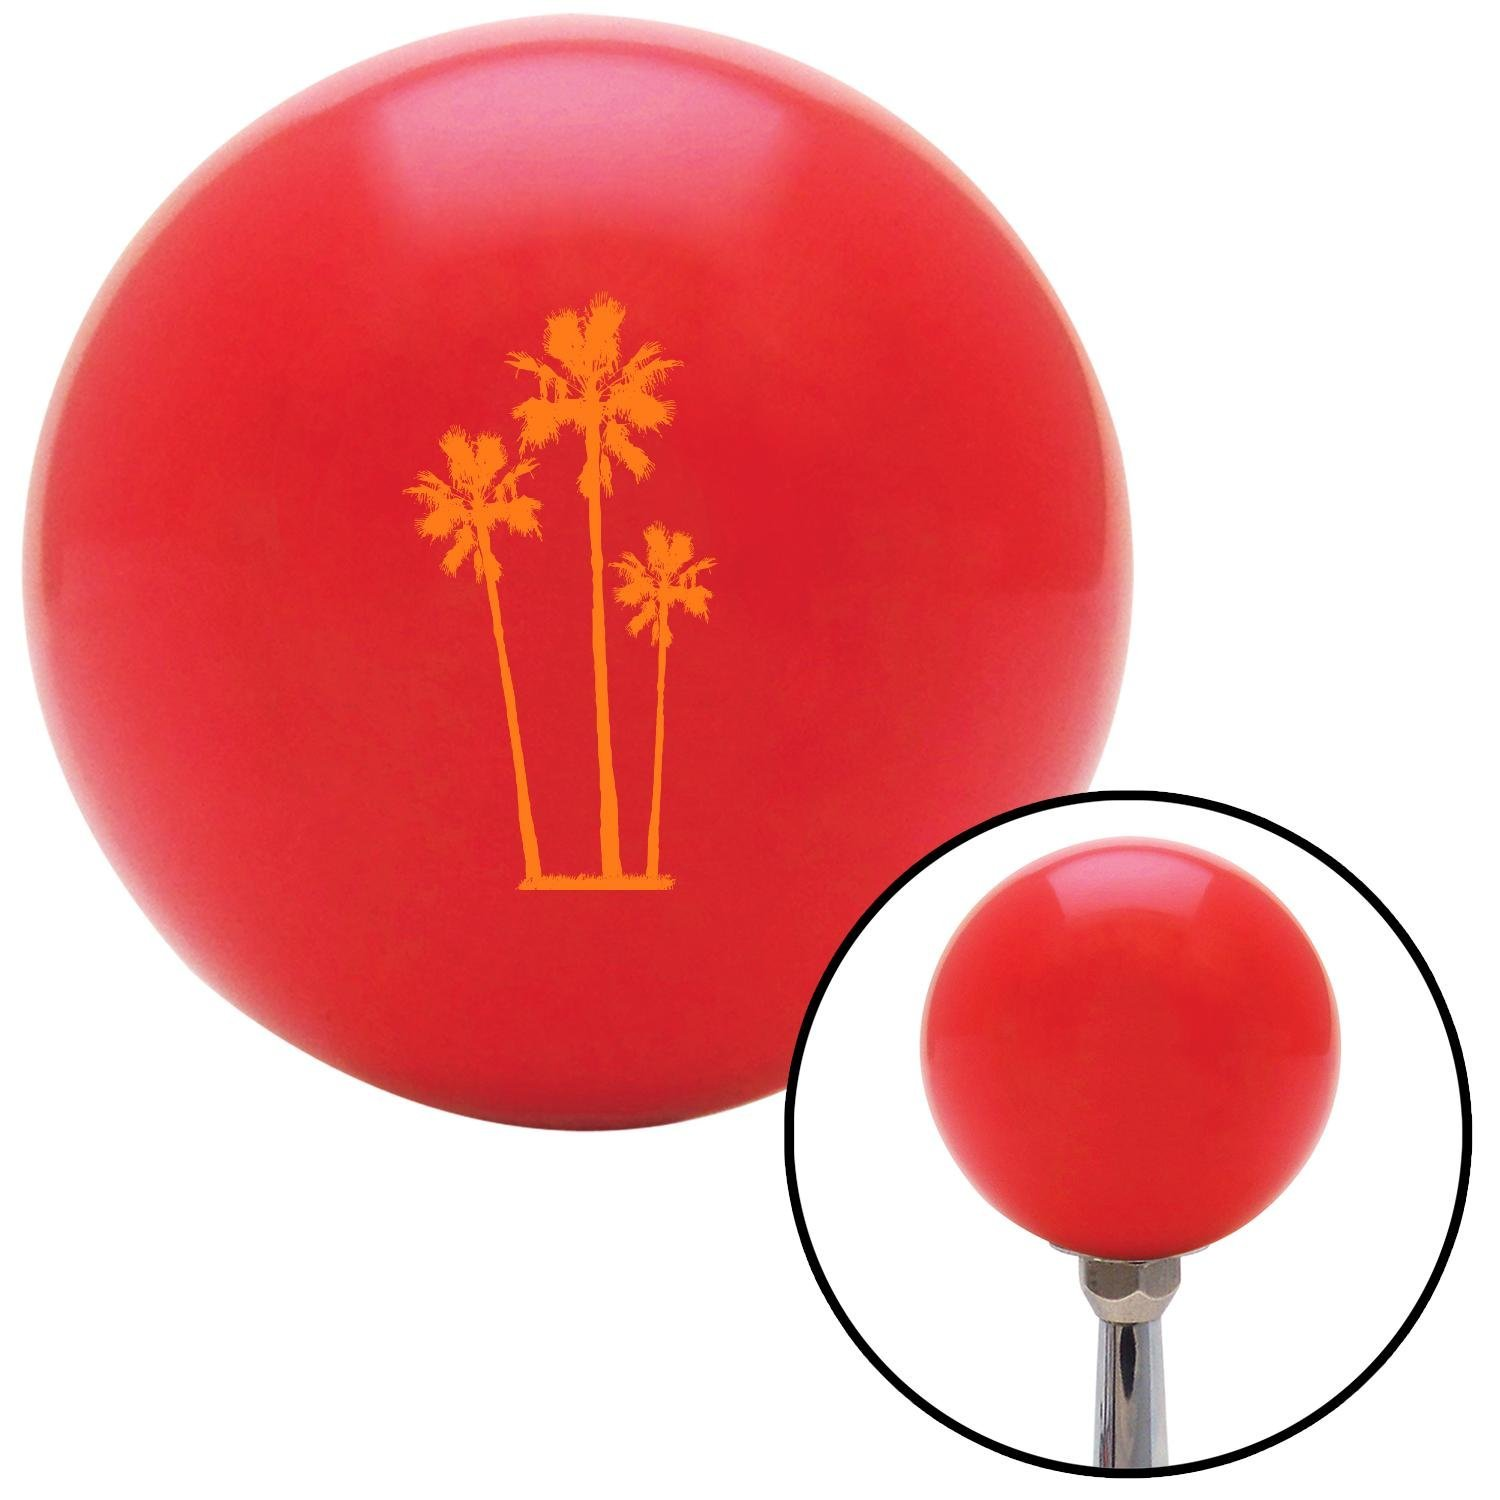 Orange Group of Palms American Shifter 95617 Red Shift Knob with M16 x 1.5 Insert